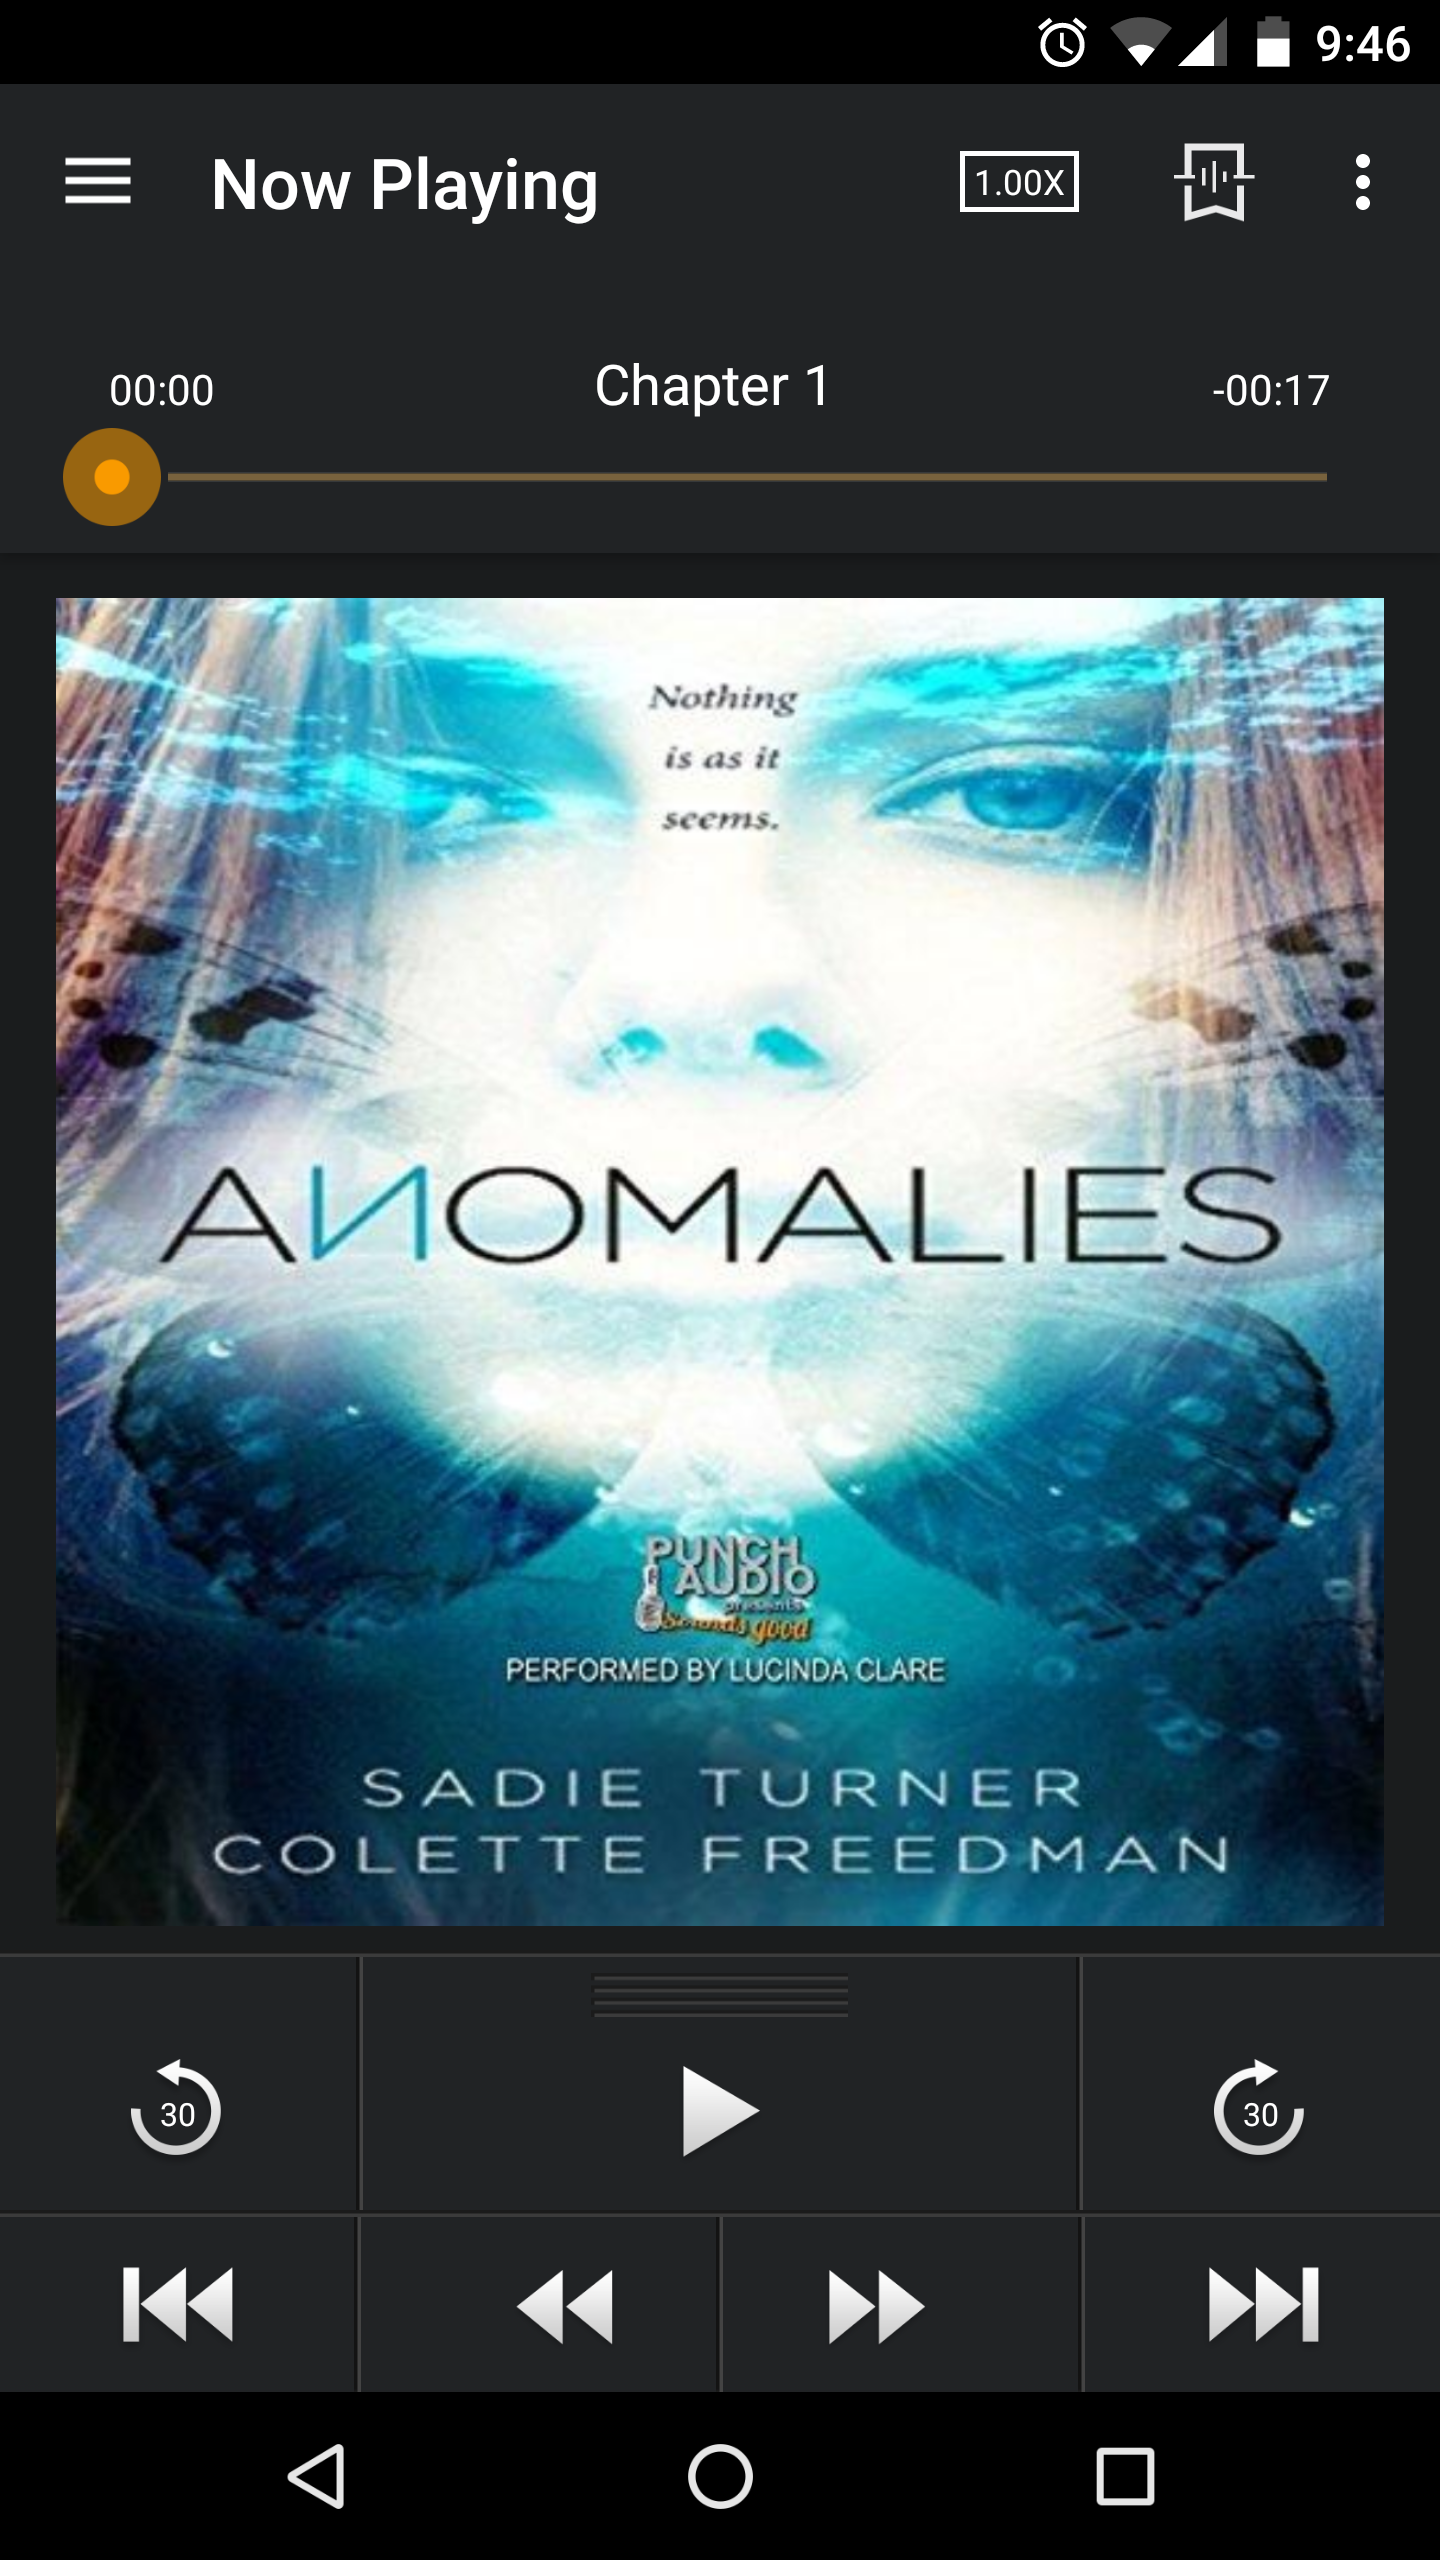 Anomalies by Colette Freedman and Sadie Turner